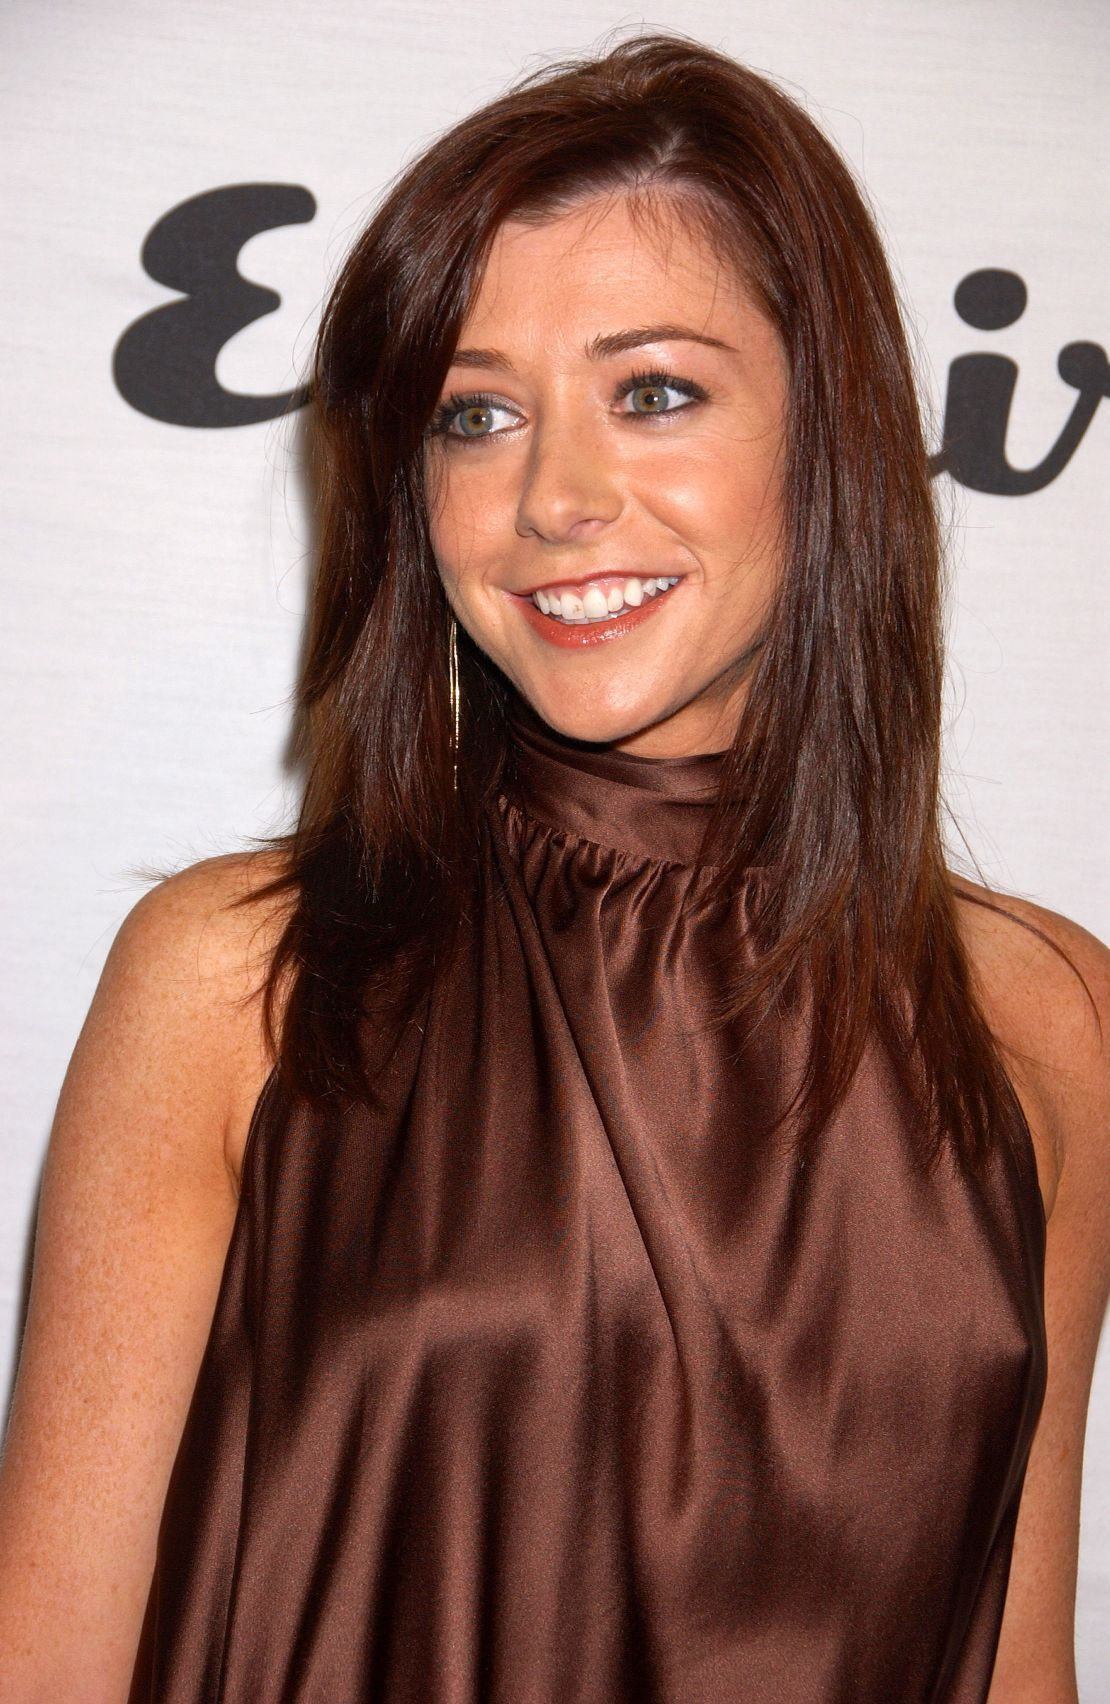 Alyson Hannigan Pokies pinpelletier anne on alyson hannigan | alyson hannigan